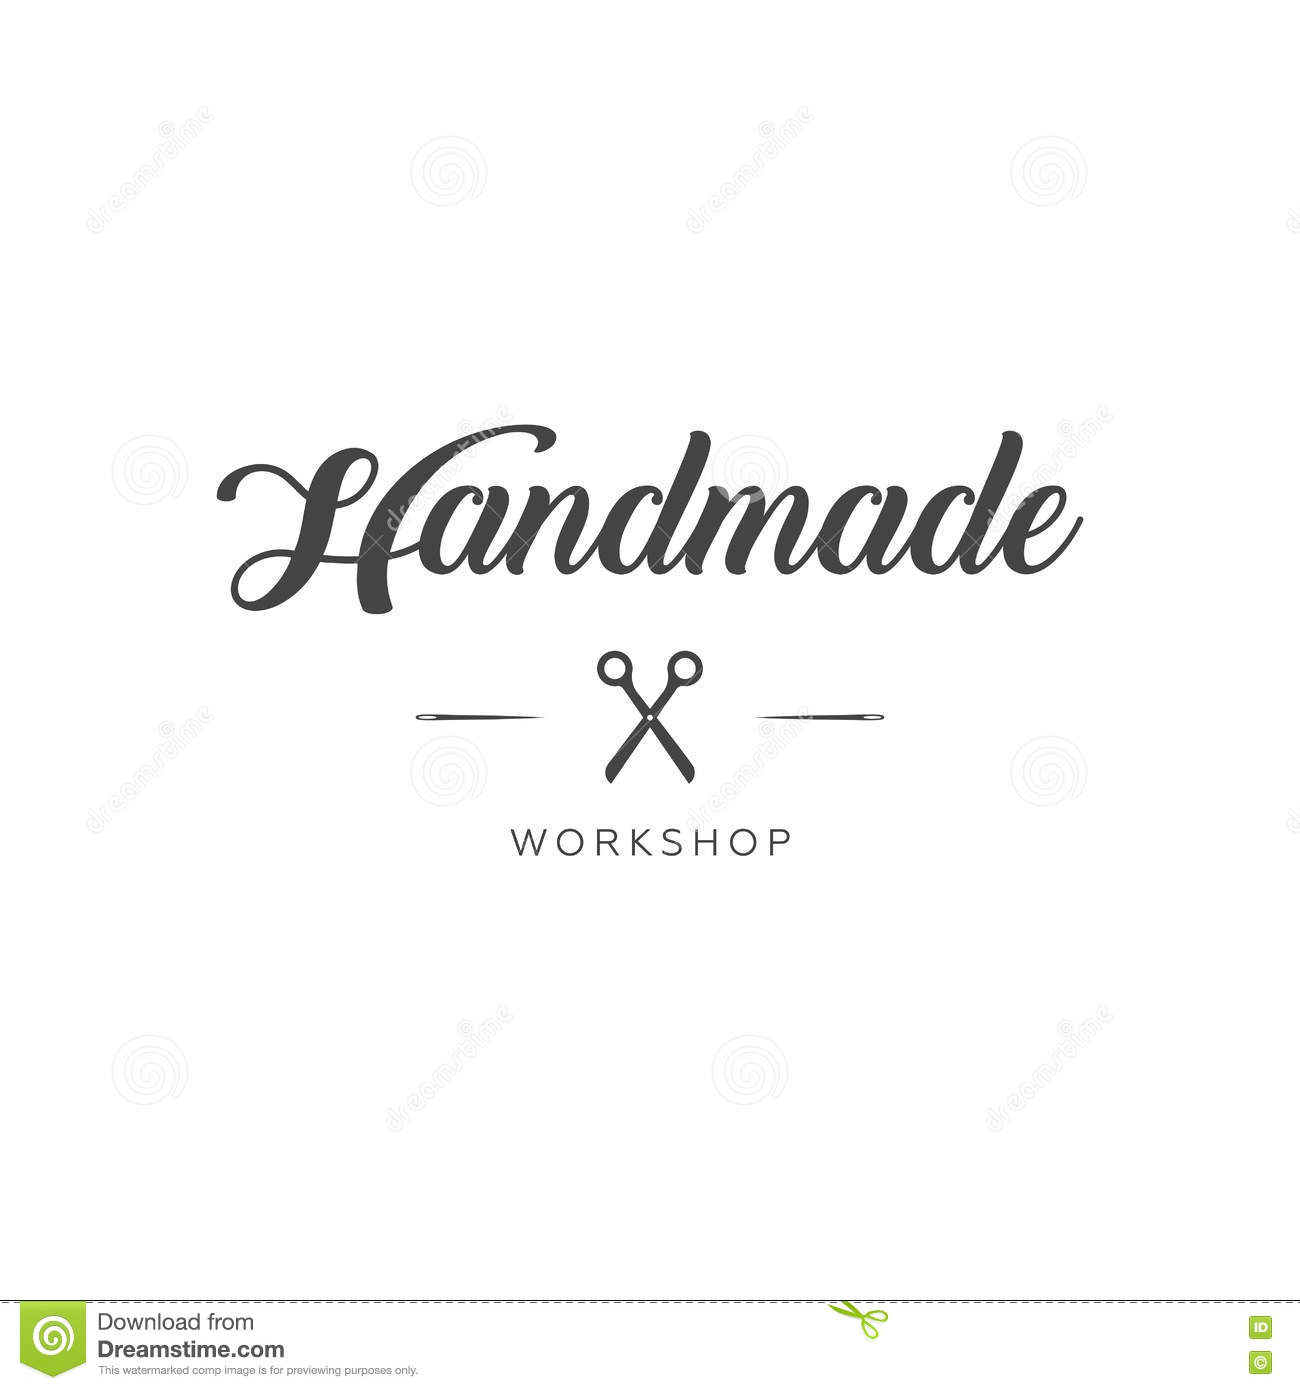 Handmade Workshop Logo Vintage Stock Illustration Illustration Of